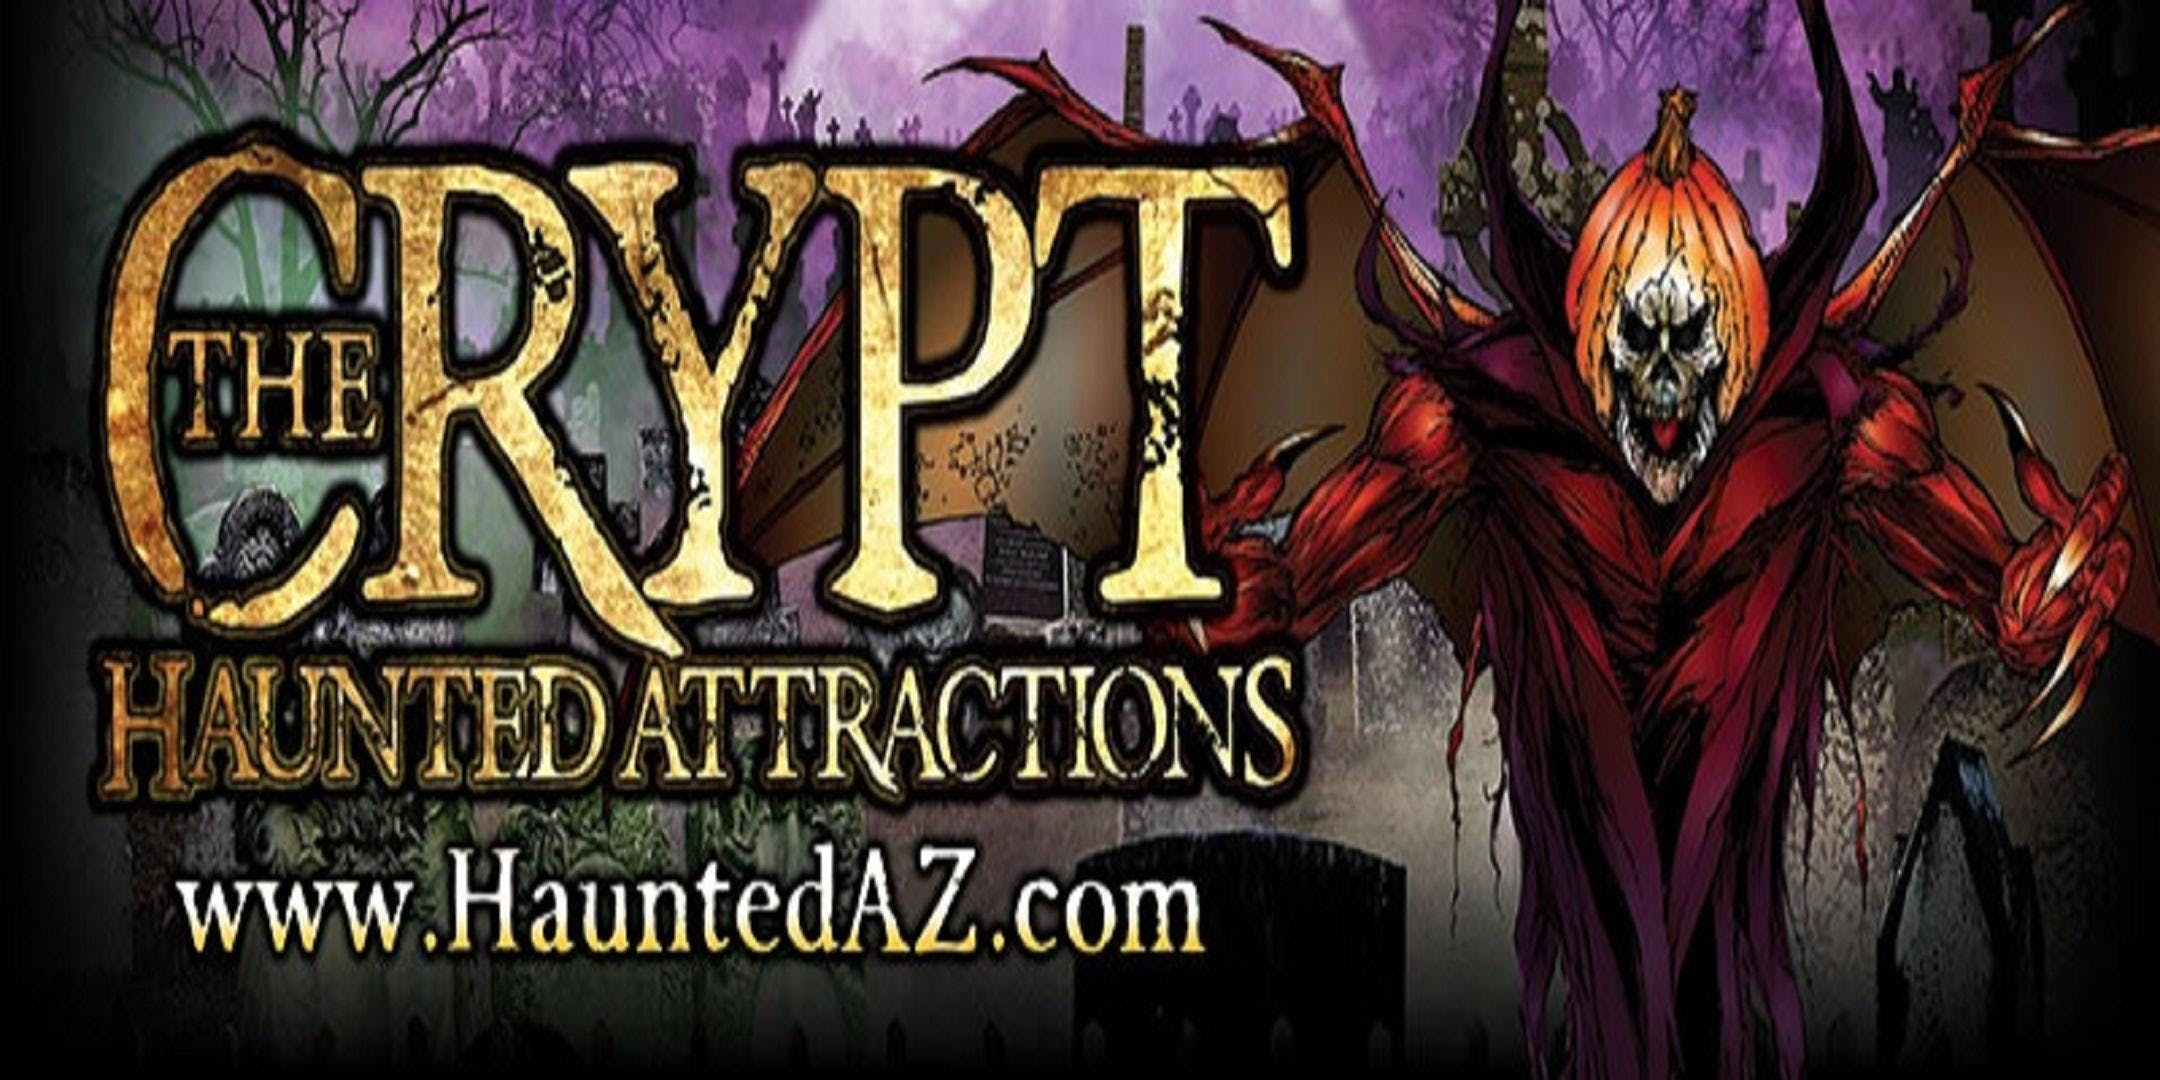 2018 Crypt Haunted Attractions-The Crypt, The Asylum, & Chaos Maze